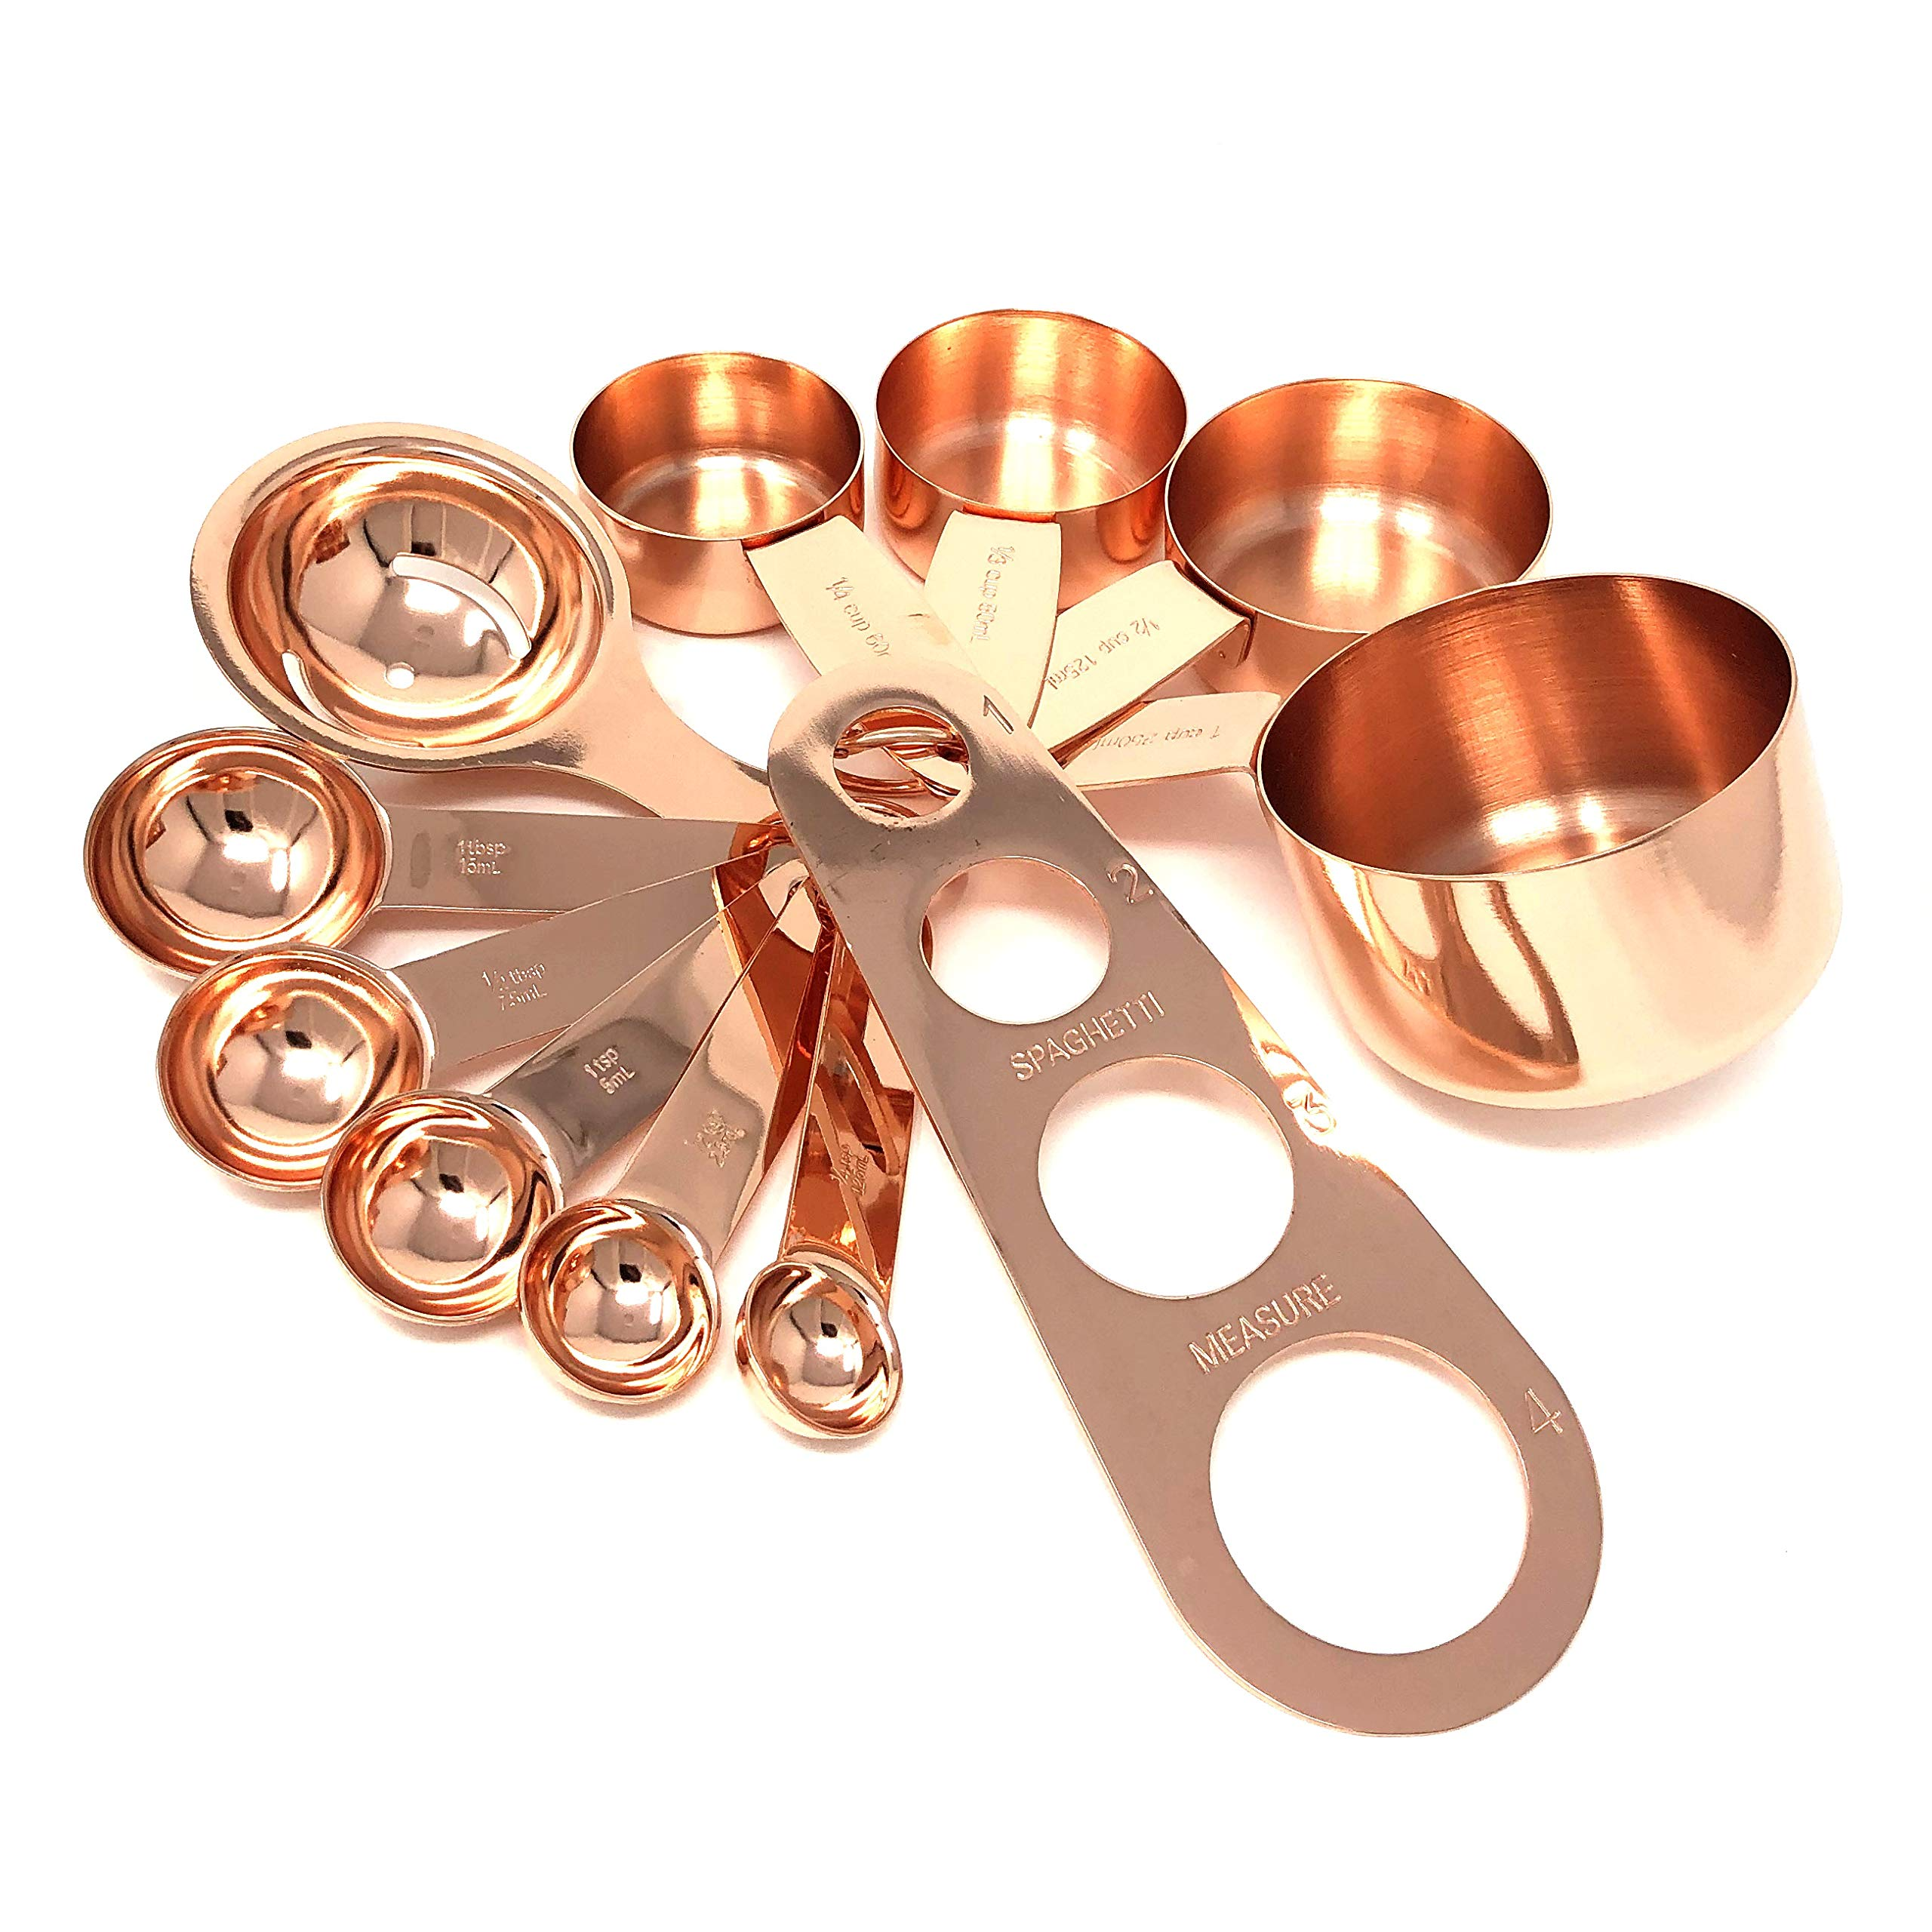 Complete Rose Gold Copper Measuring Set - Cups, Spoons, Spaghetti Measure Tool and Egg Yolk Separator - Premium Stainless Steel by Homey Product